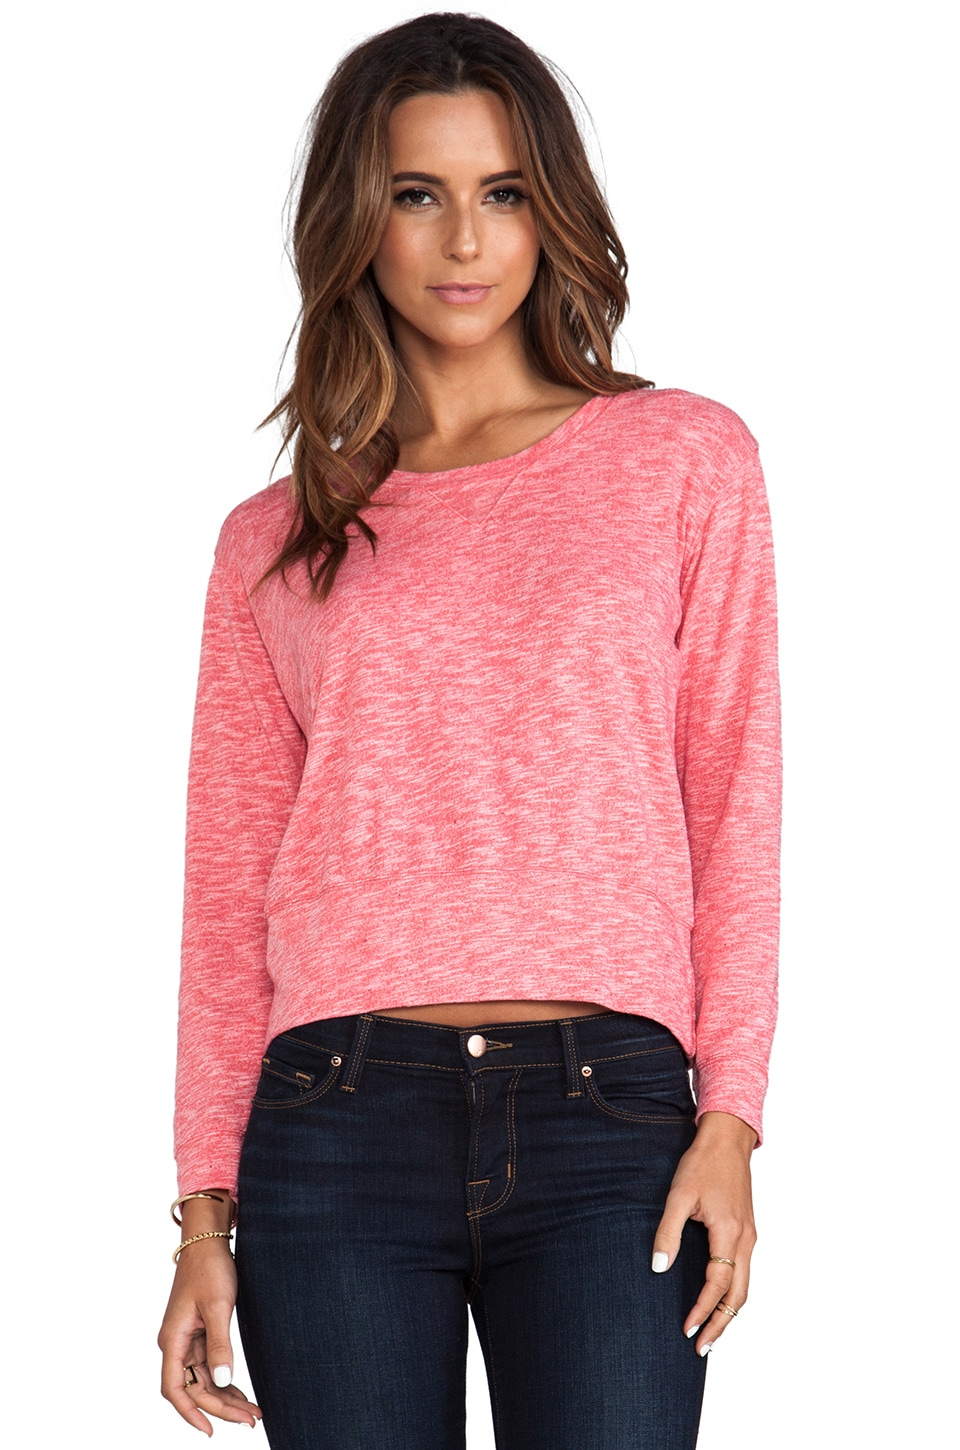 MONROW Cosmic Fleece Sweatshirt in Coral